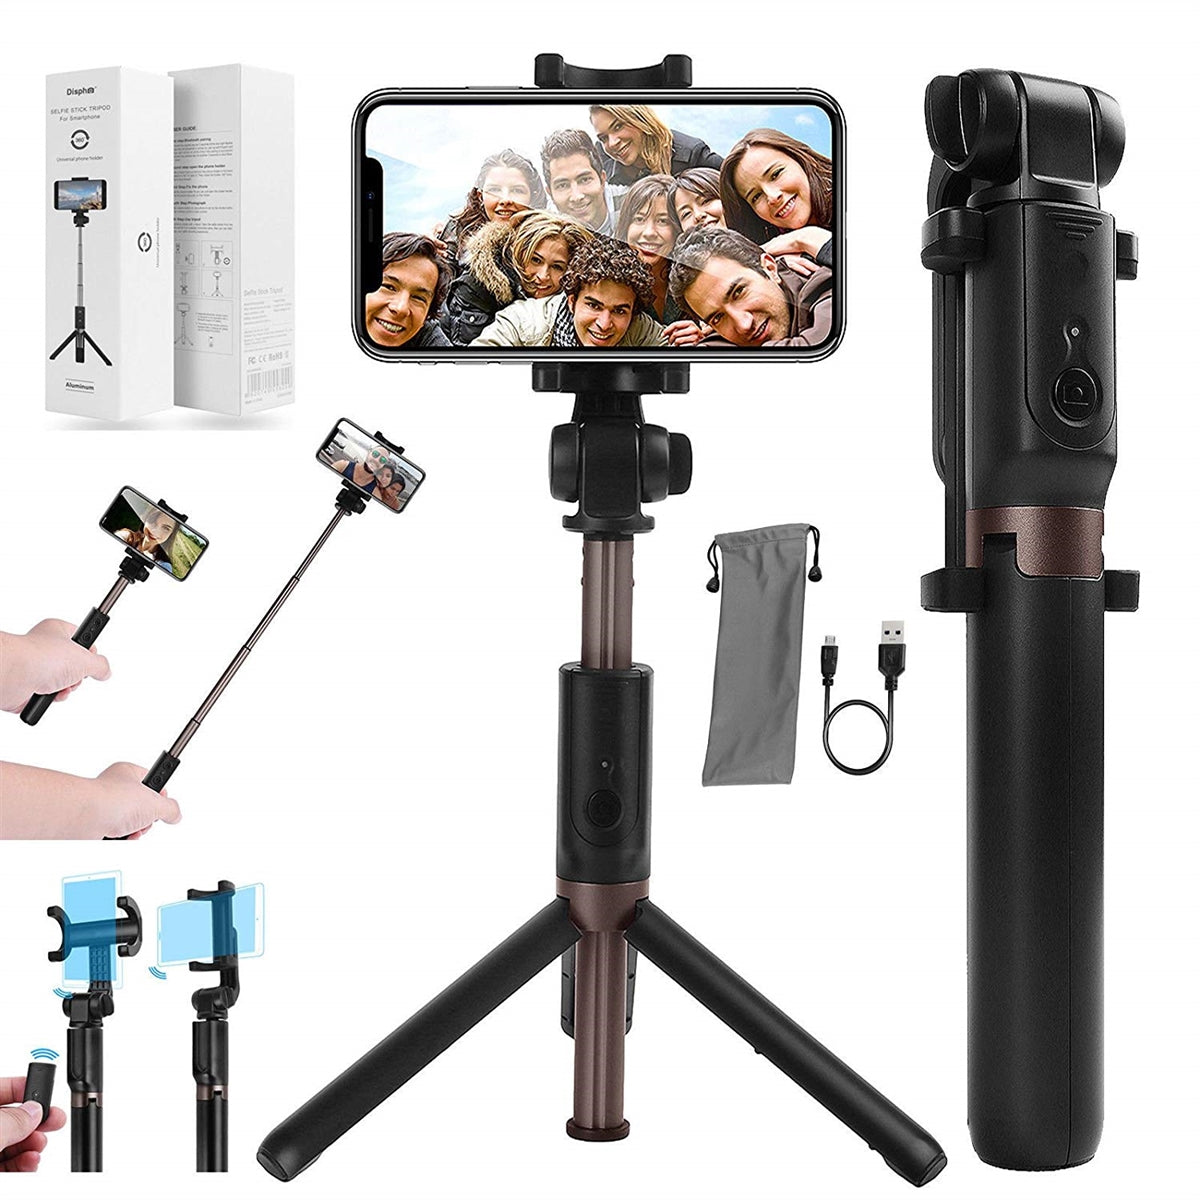 AICase Extendable Selfie Stick with Wireless Bluetooth Remote and Tripod Stand